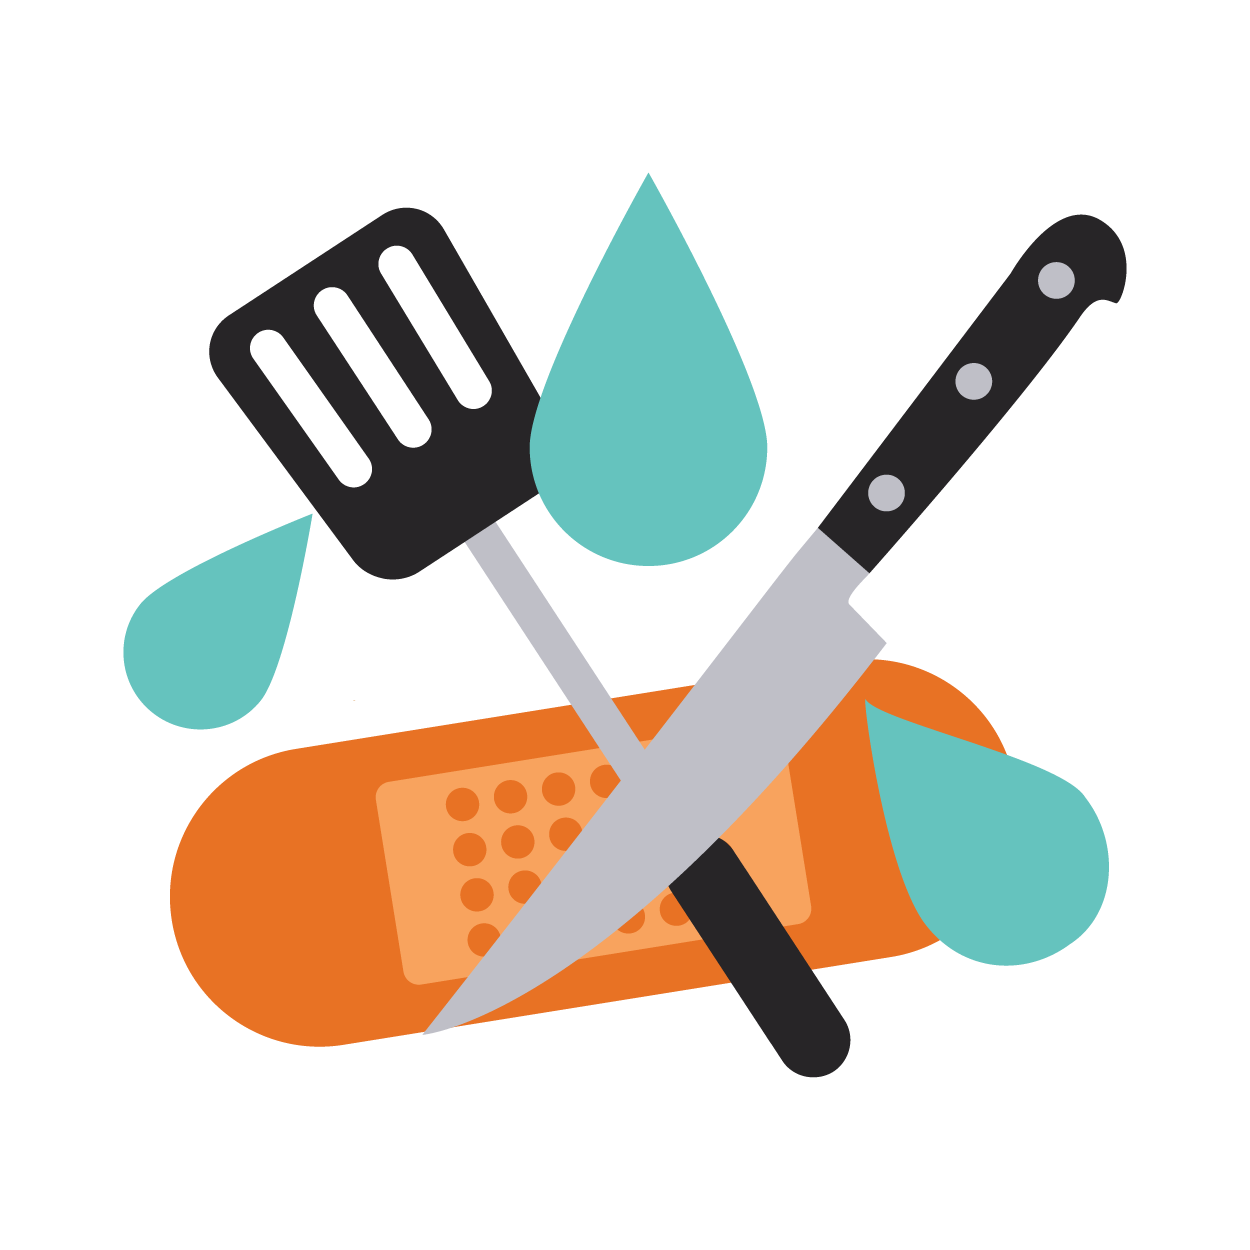 Kitchen Safety Pictures: Cut Food Wastage & Share Homemade Meals With WeFiFo